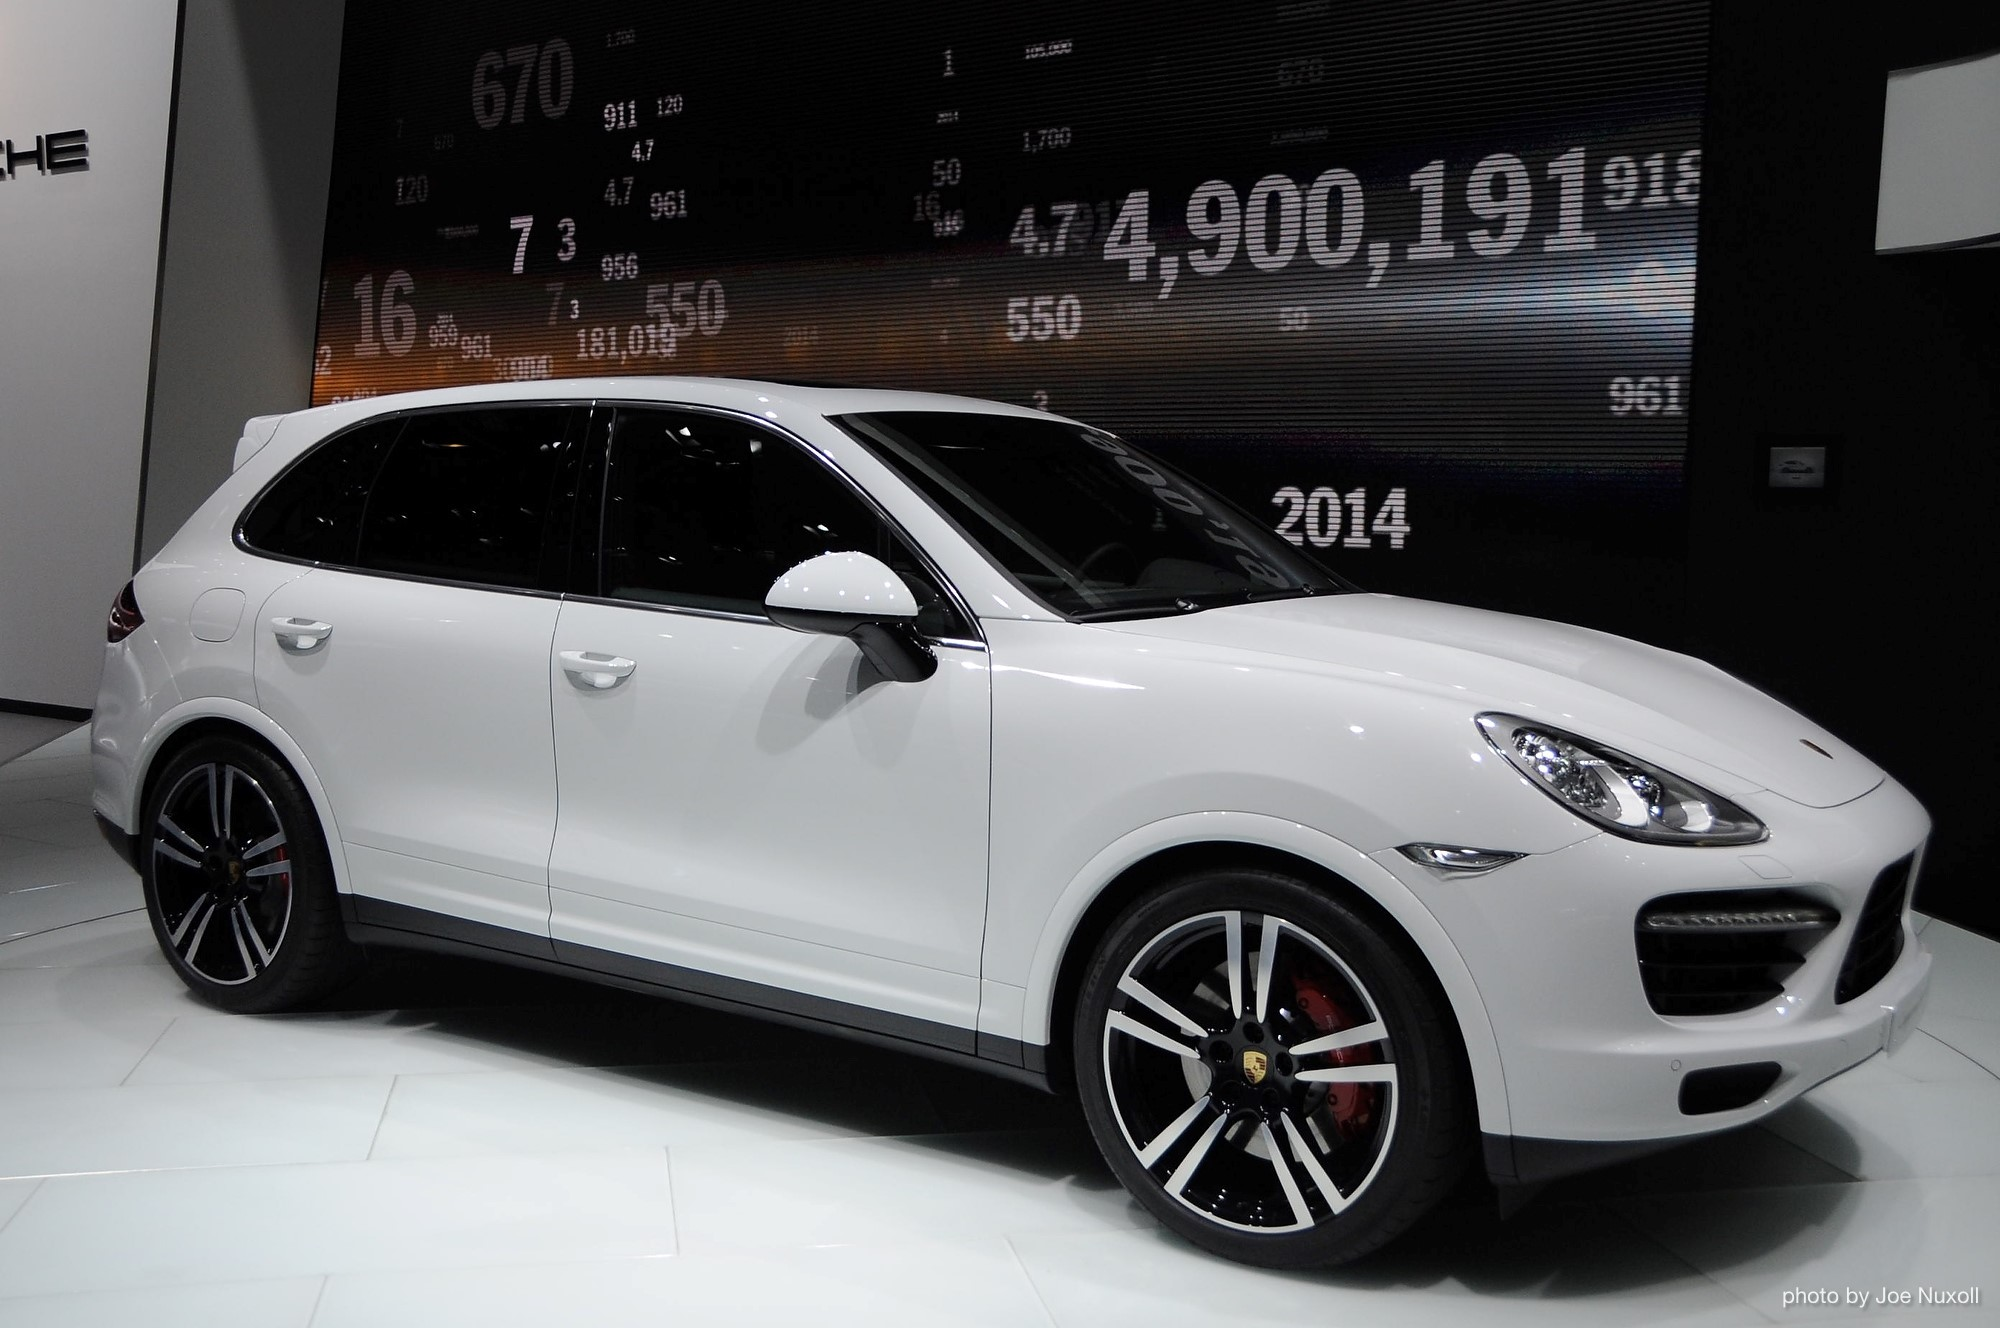 Volvo Of Houston >> 2014 Porsche Cayenne Review, Ratings, Specs, Prices, and ...